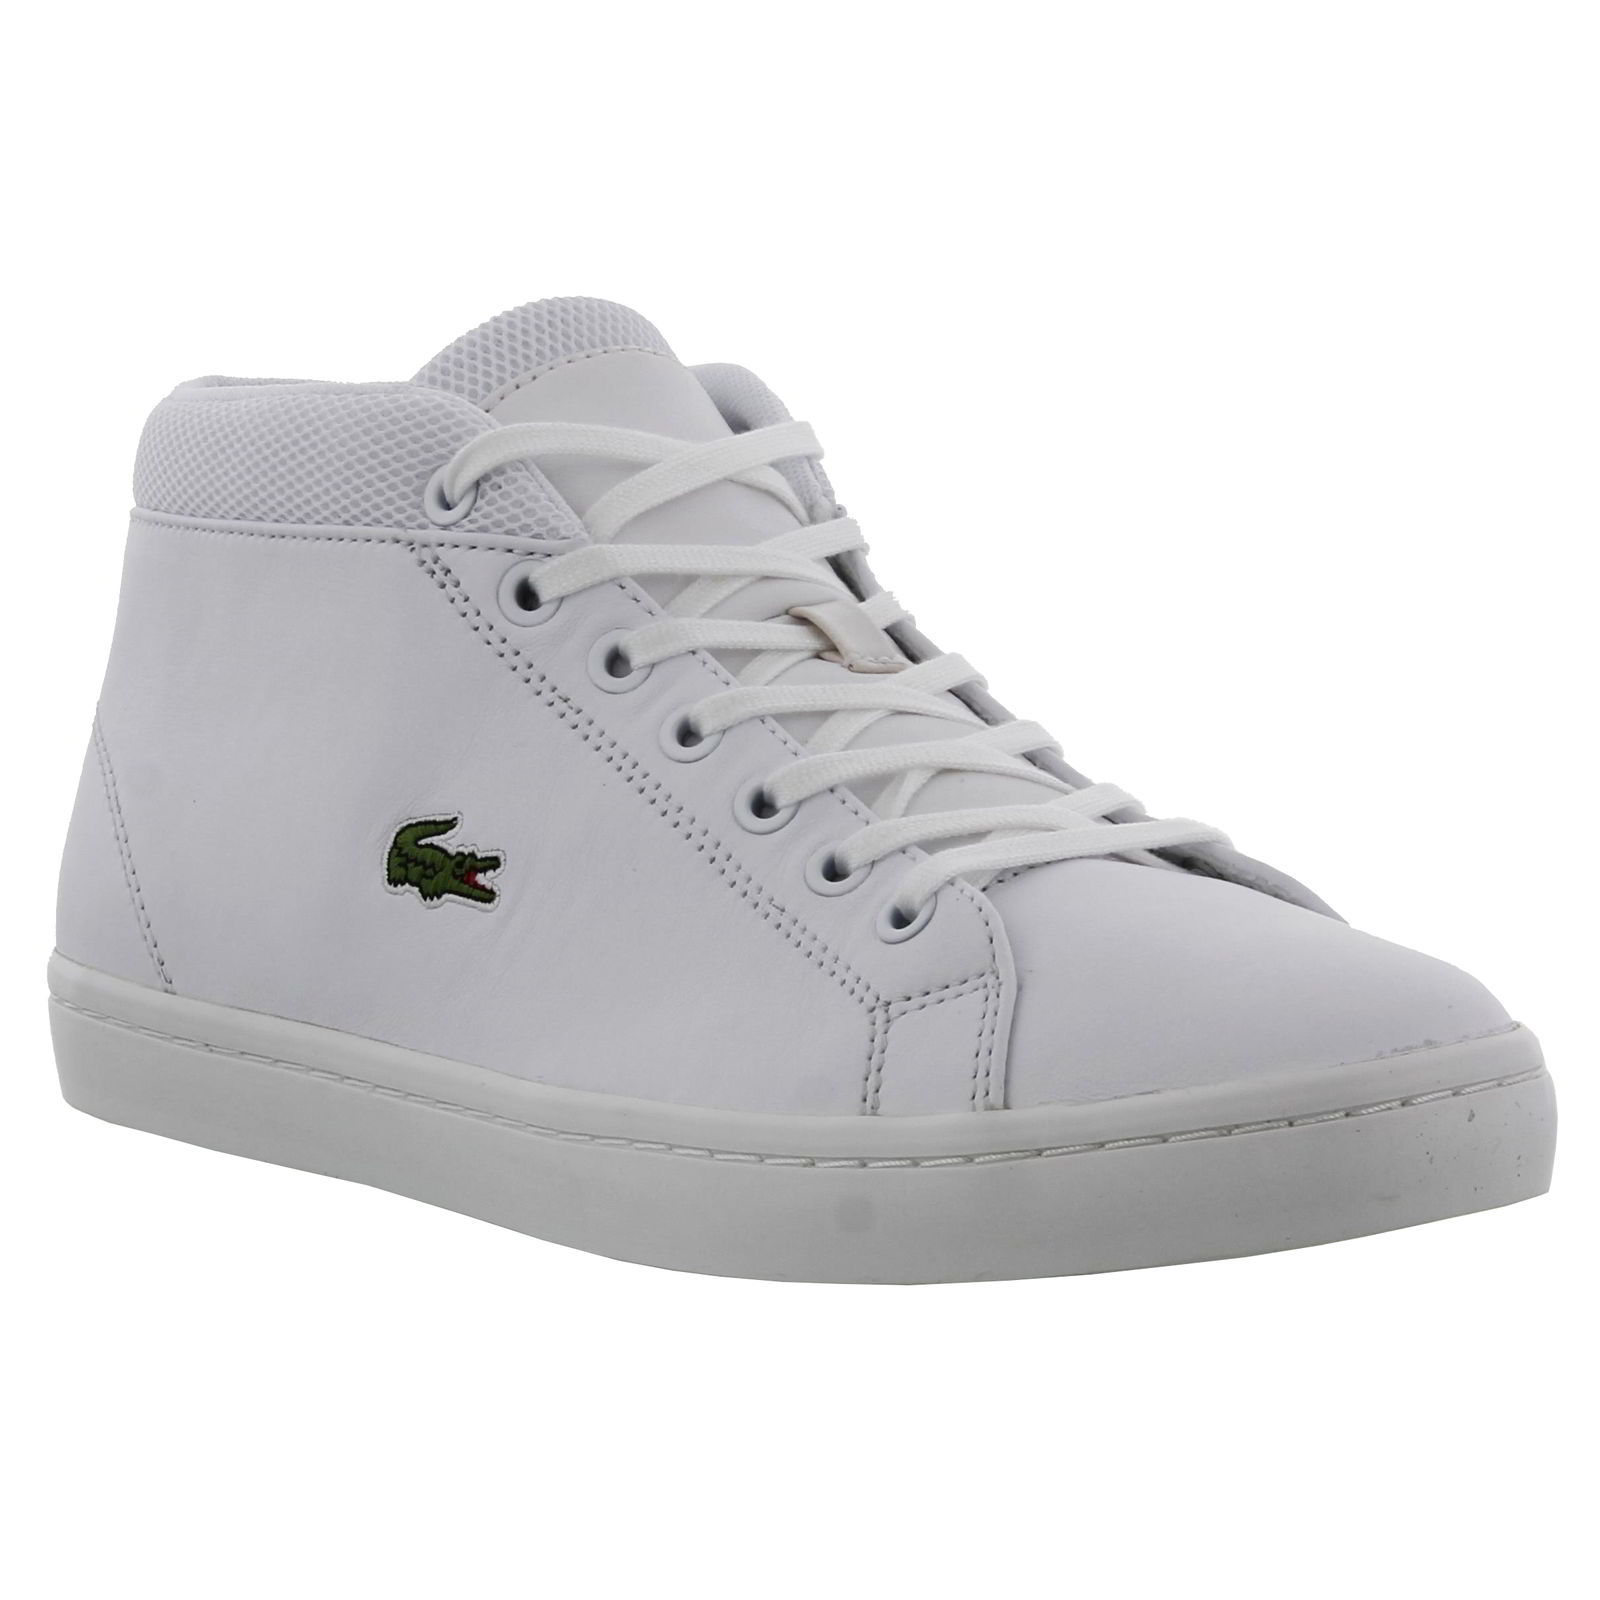 bb5bc2f8c7bbcc Details about Lacoste Mens Straightset Chukka 316 3 SPM White Trainers Size  UK 9-11